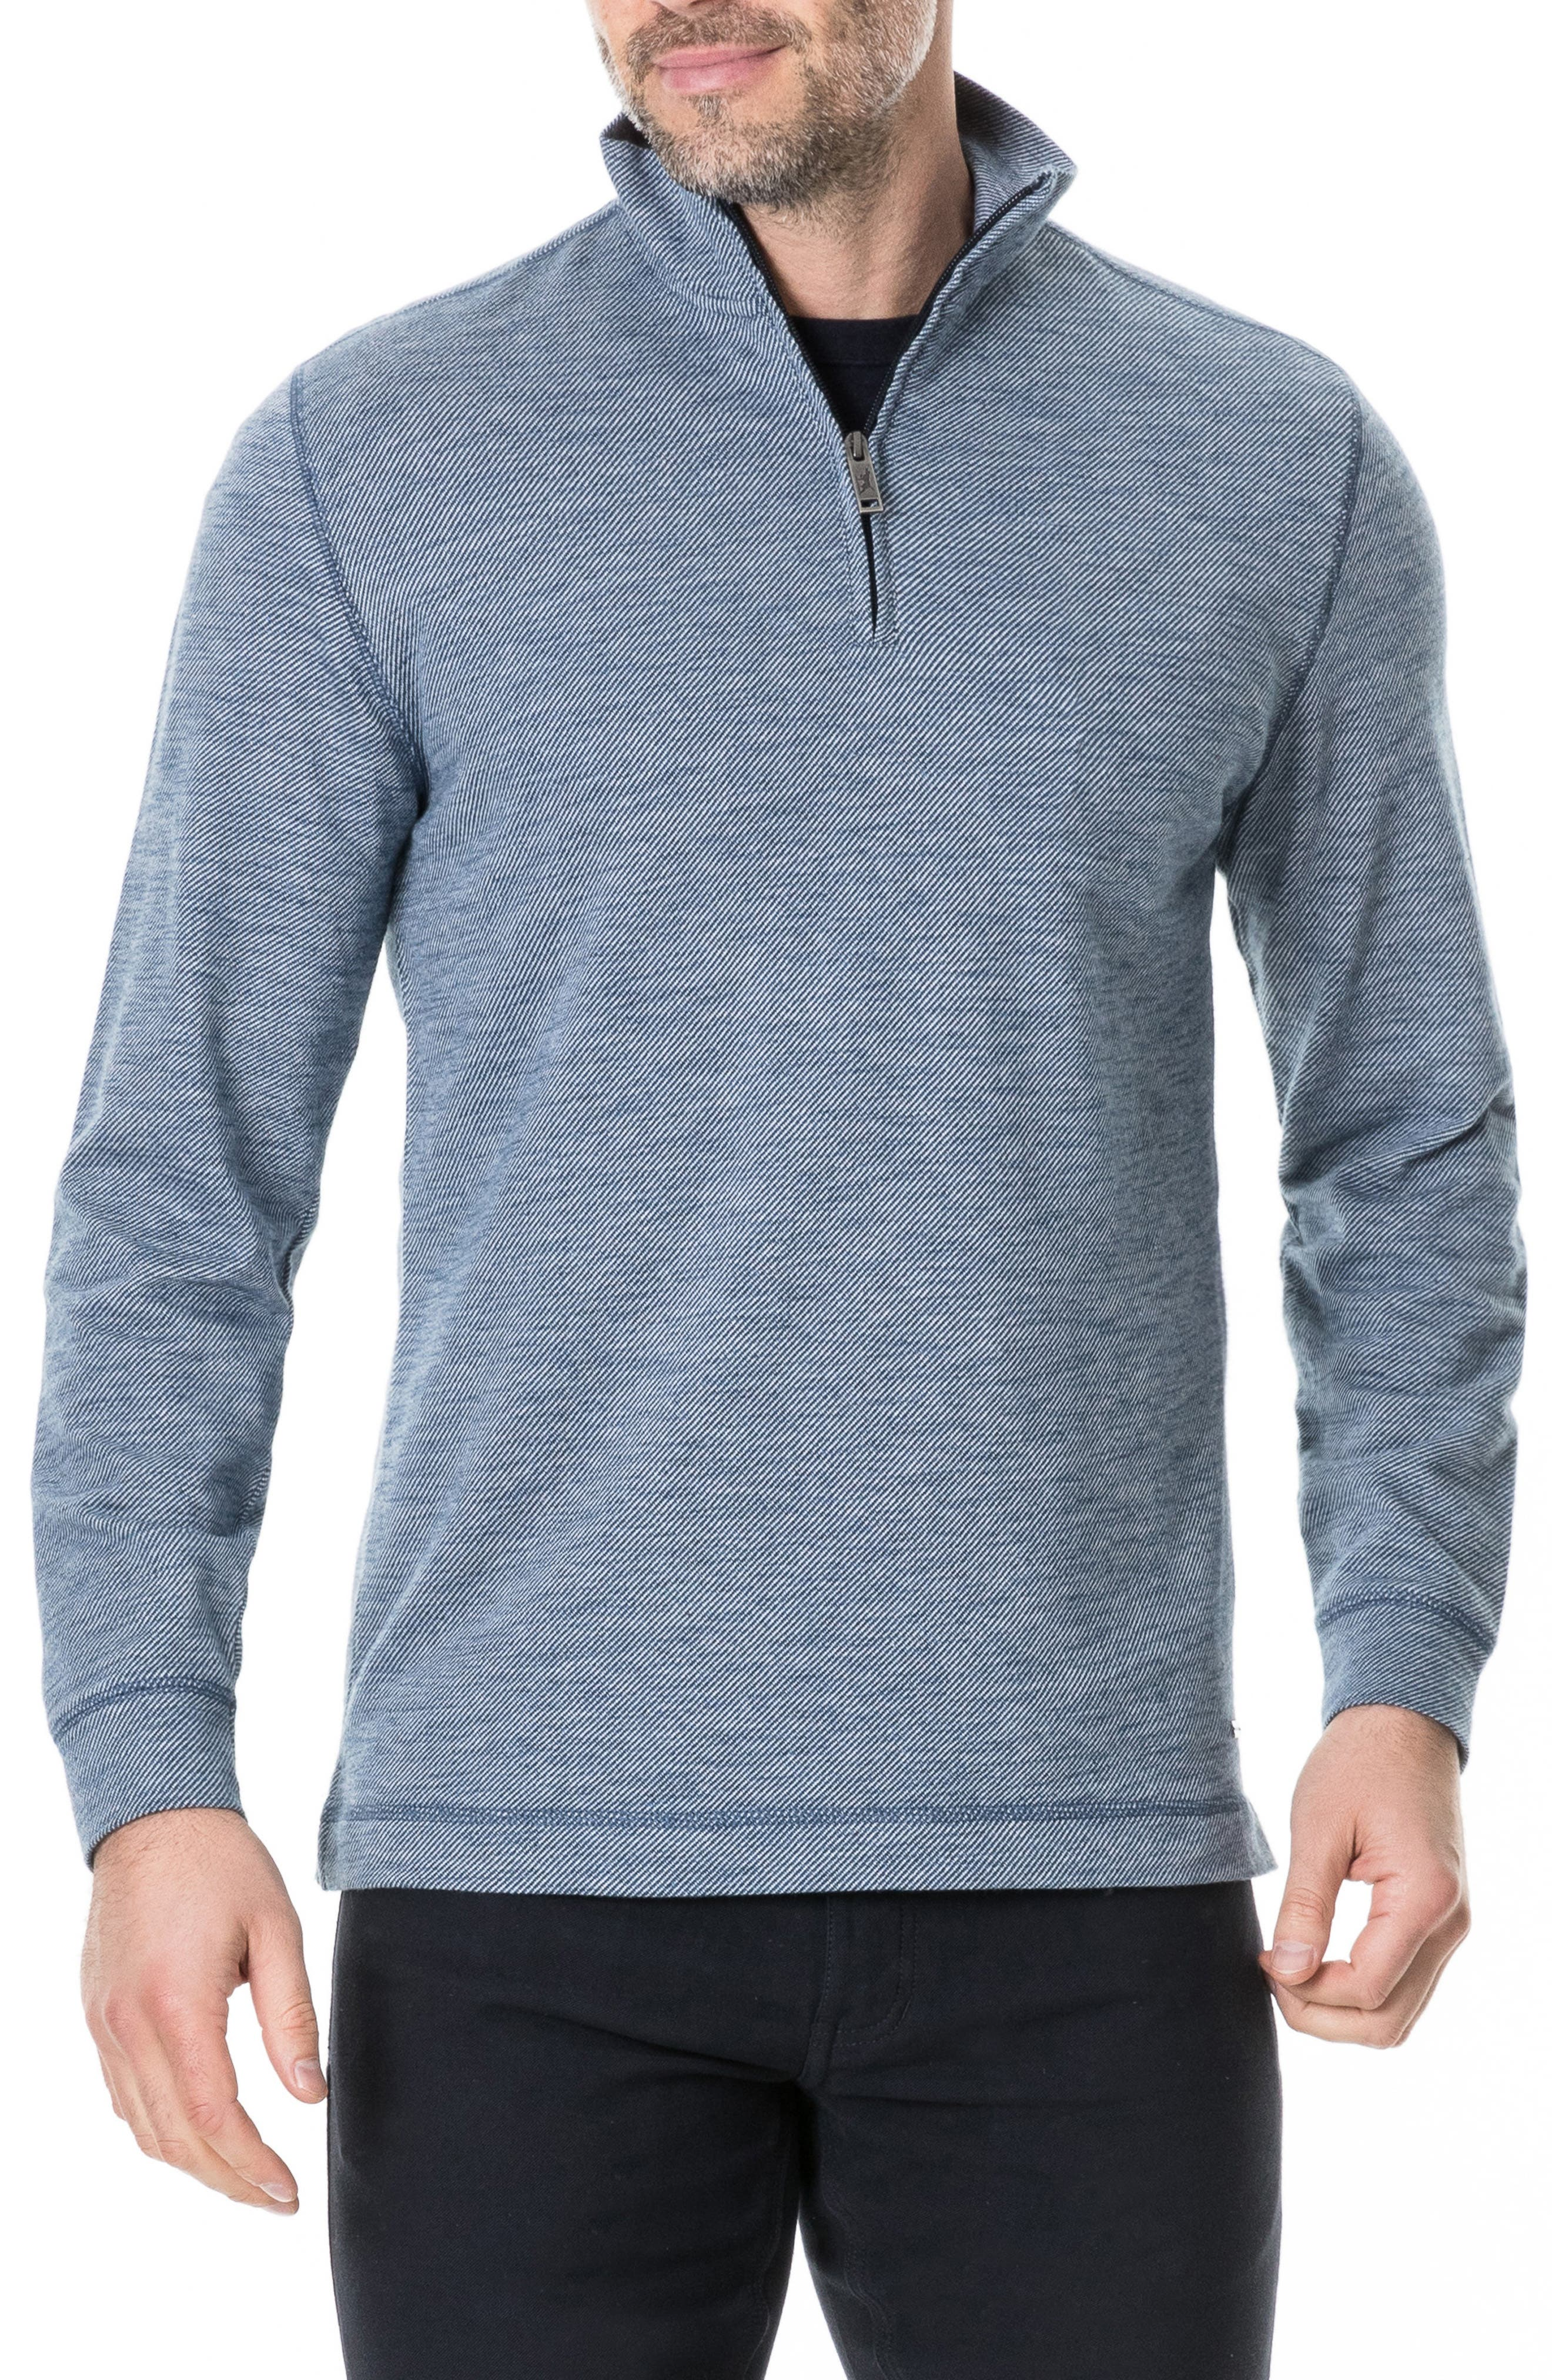 RODD & GUNN, Anvil Island Regular Fit Pullover, Main thumbnail 1, color, DENIM BLUE